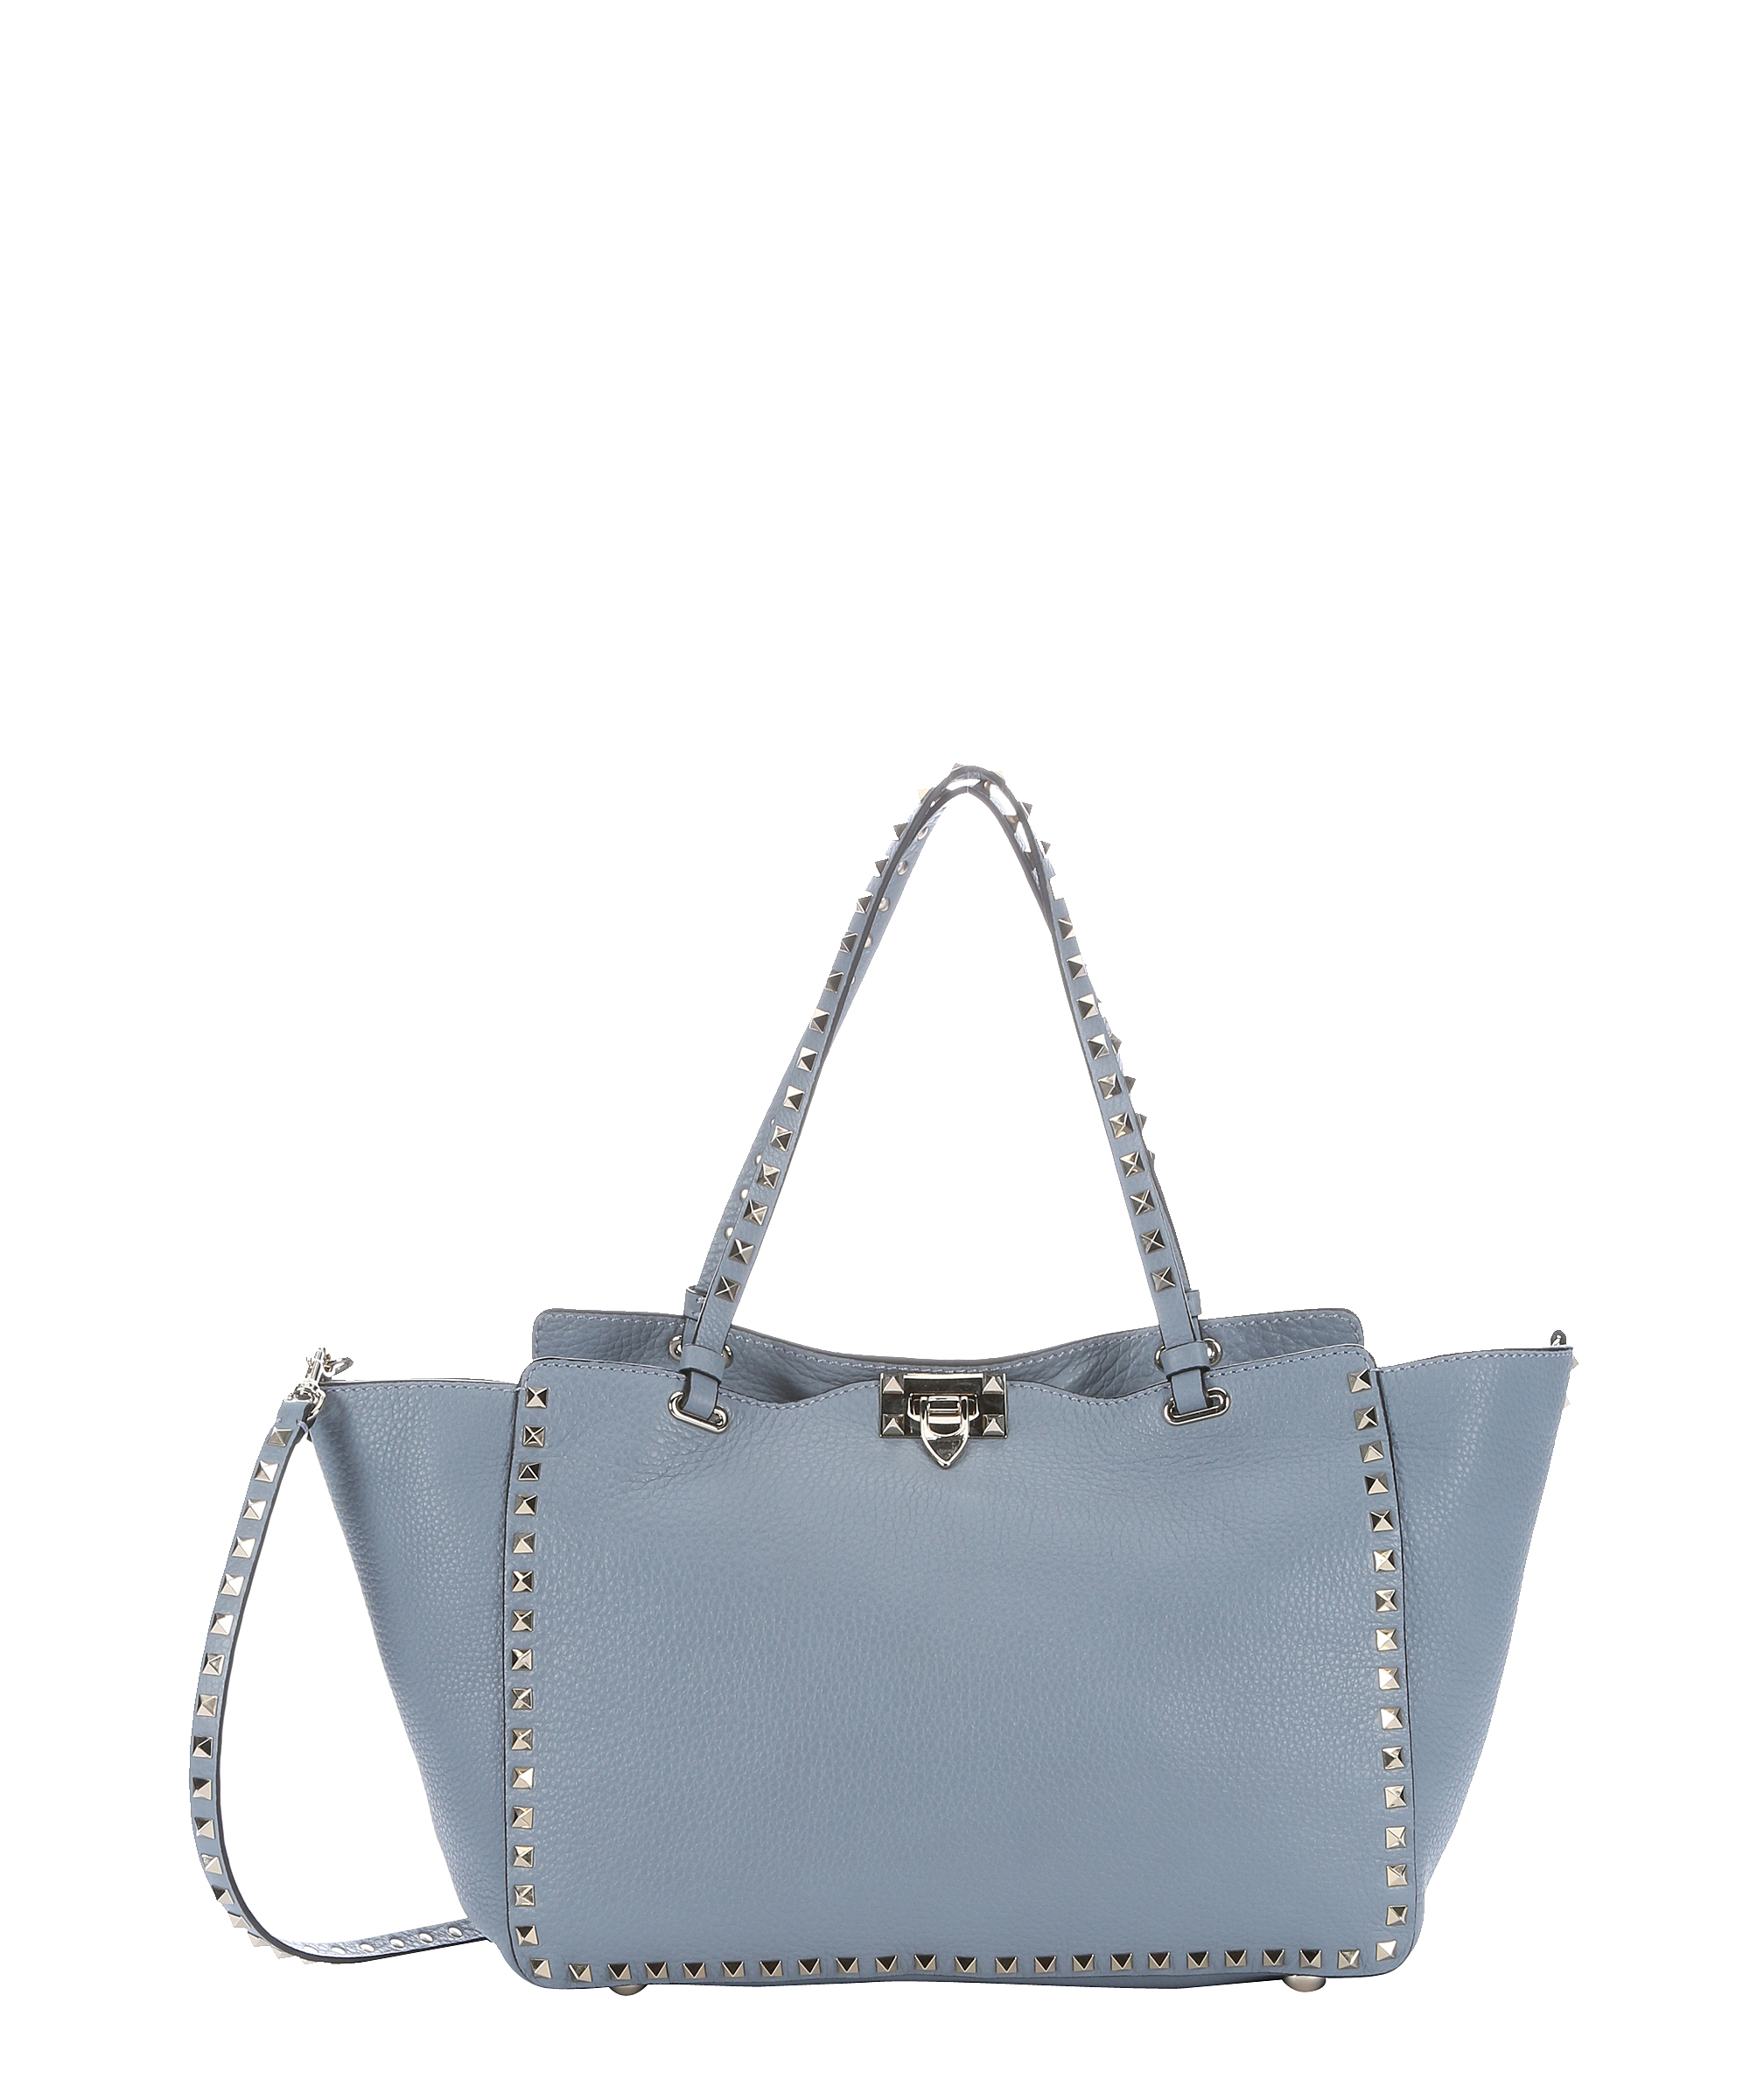 Valentino Light Blue Leather 'rockstud' Convertible Tote | Bluefly